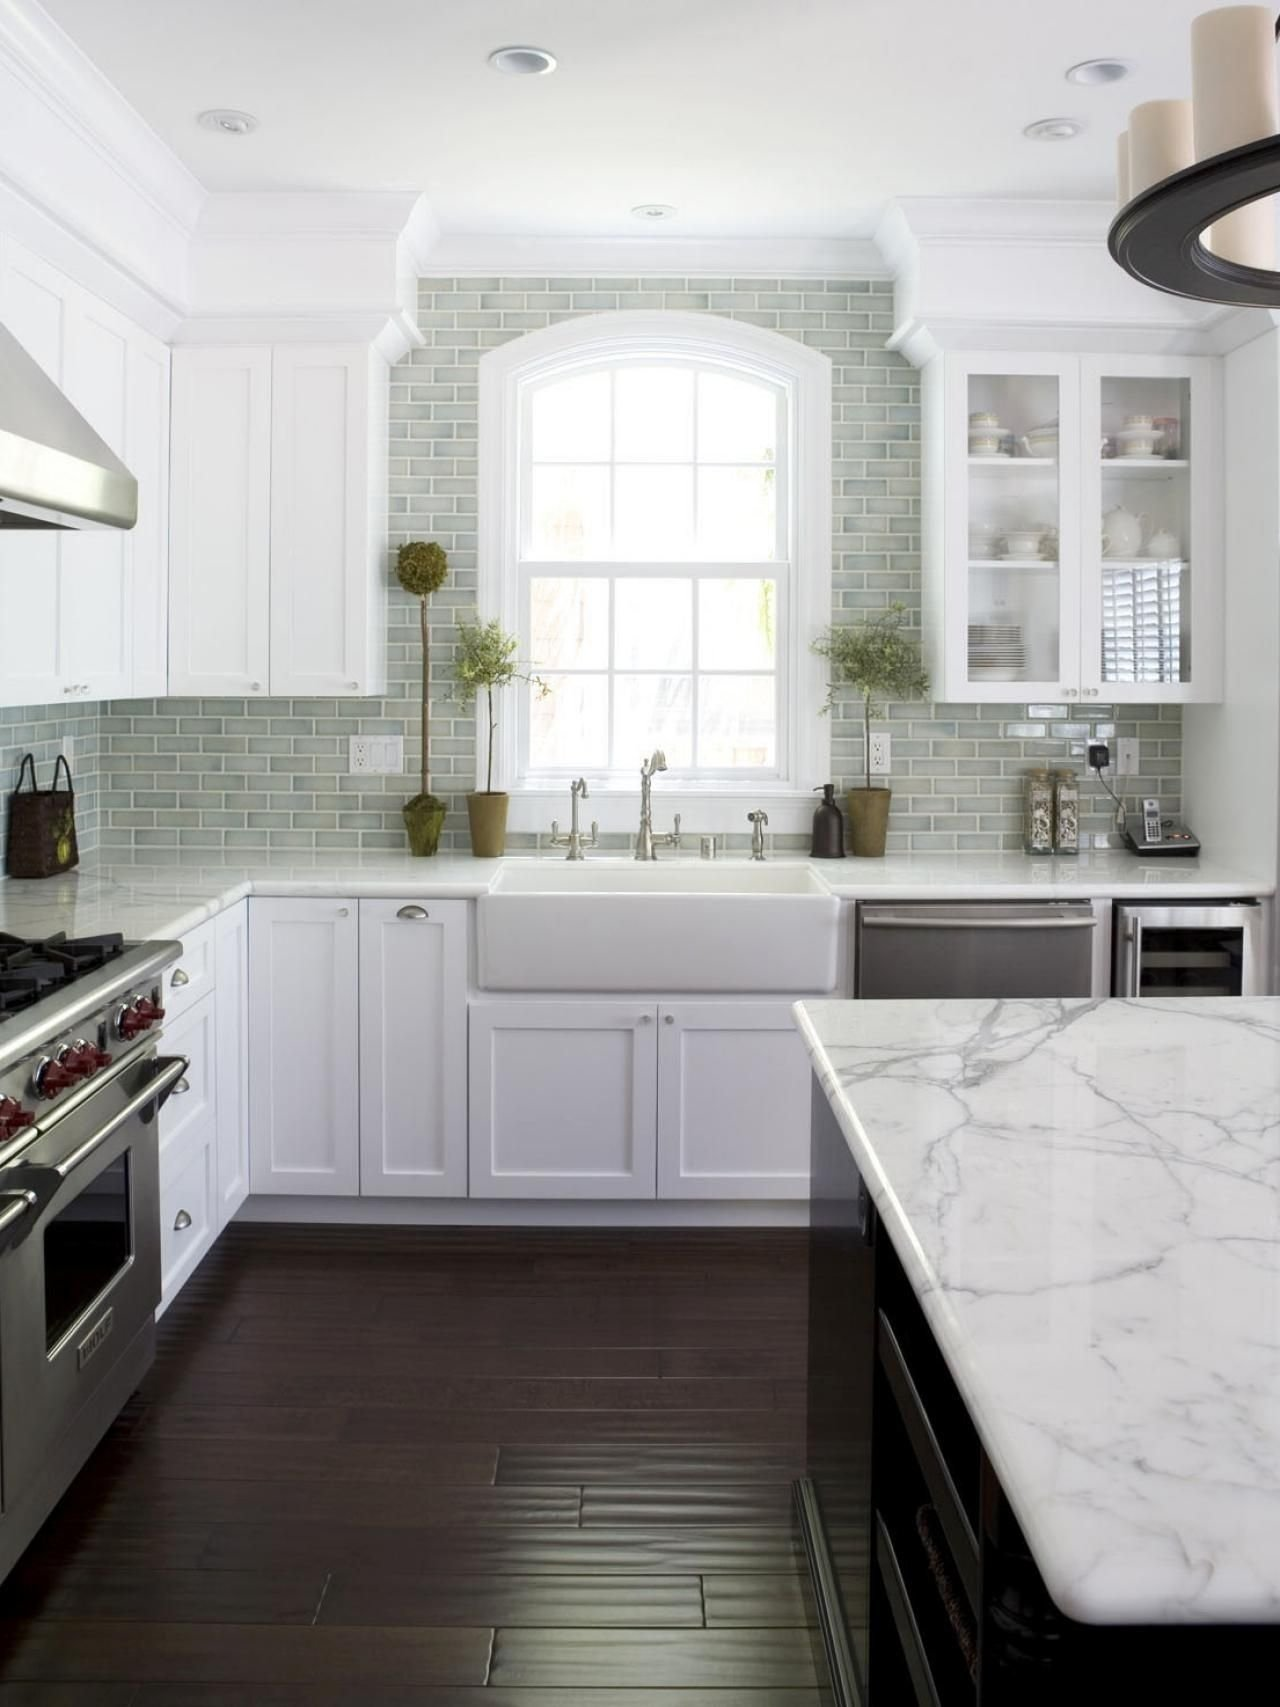 10 Spectacular Kitchen Countertop Ideas With White Cabinets our 55 favorite white kitchens hgtv kitchens and calacatta marble 1 2020